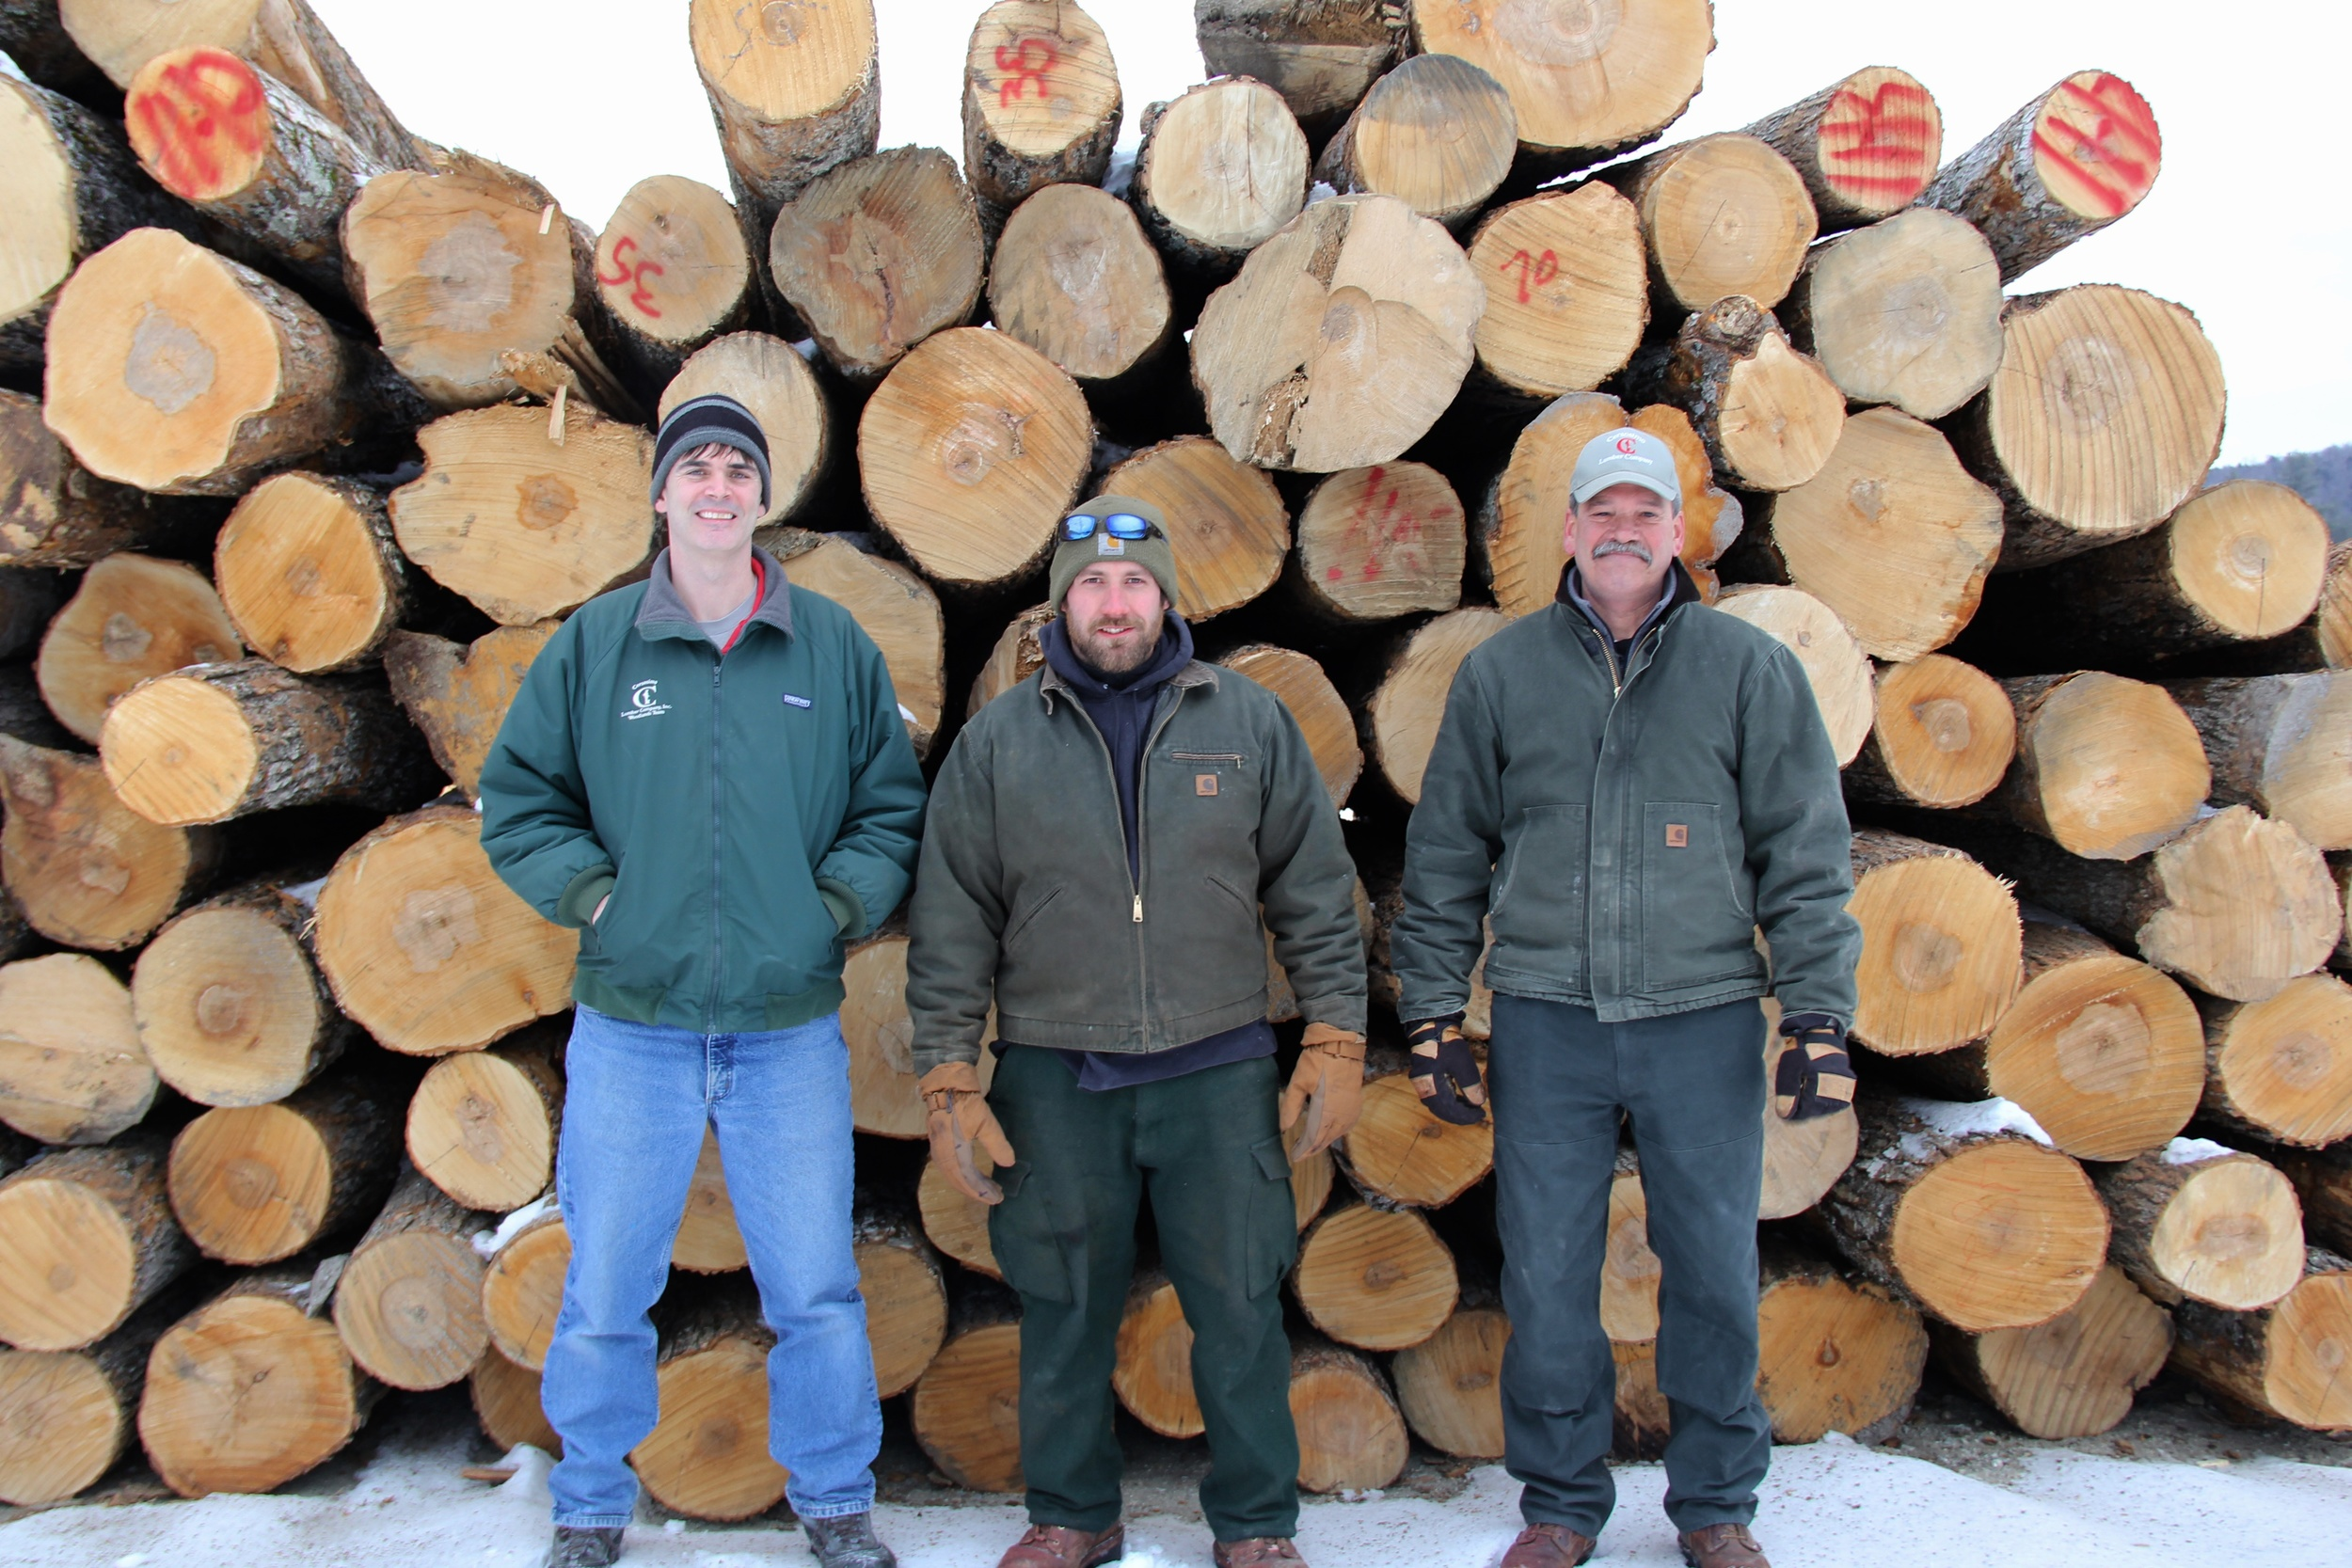 L to R- Eric Parenti, Forester; Nate Taylor, Log Scaler; Jim Brown, Manager (Cersosimo Lumber Co. - Rumney Mill).jpg